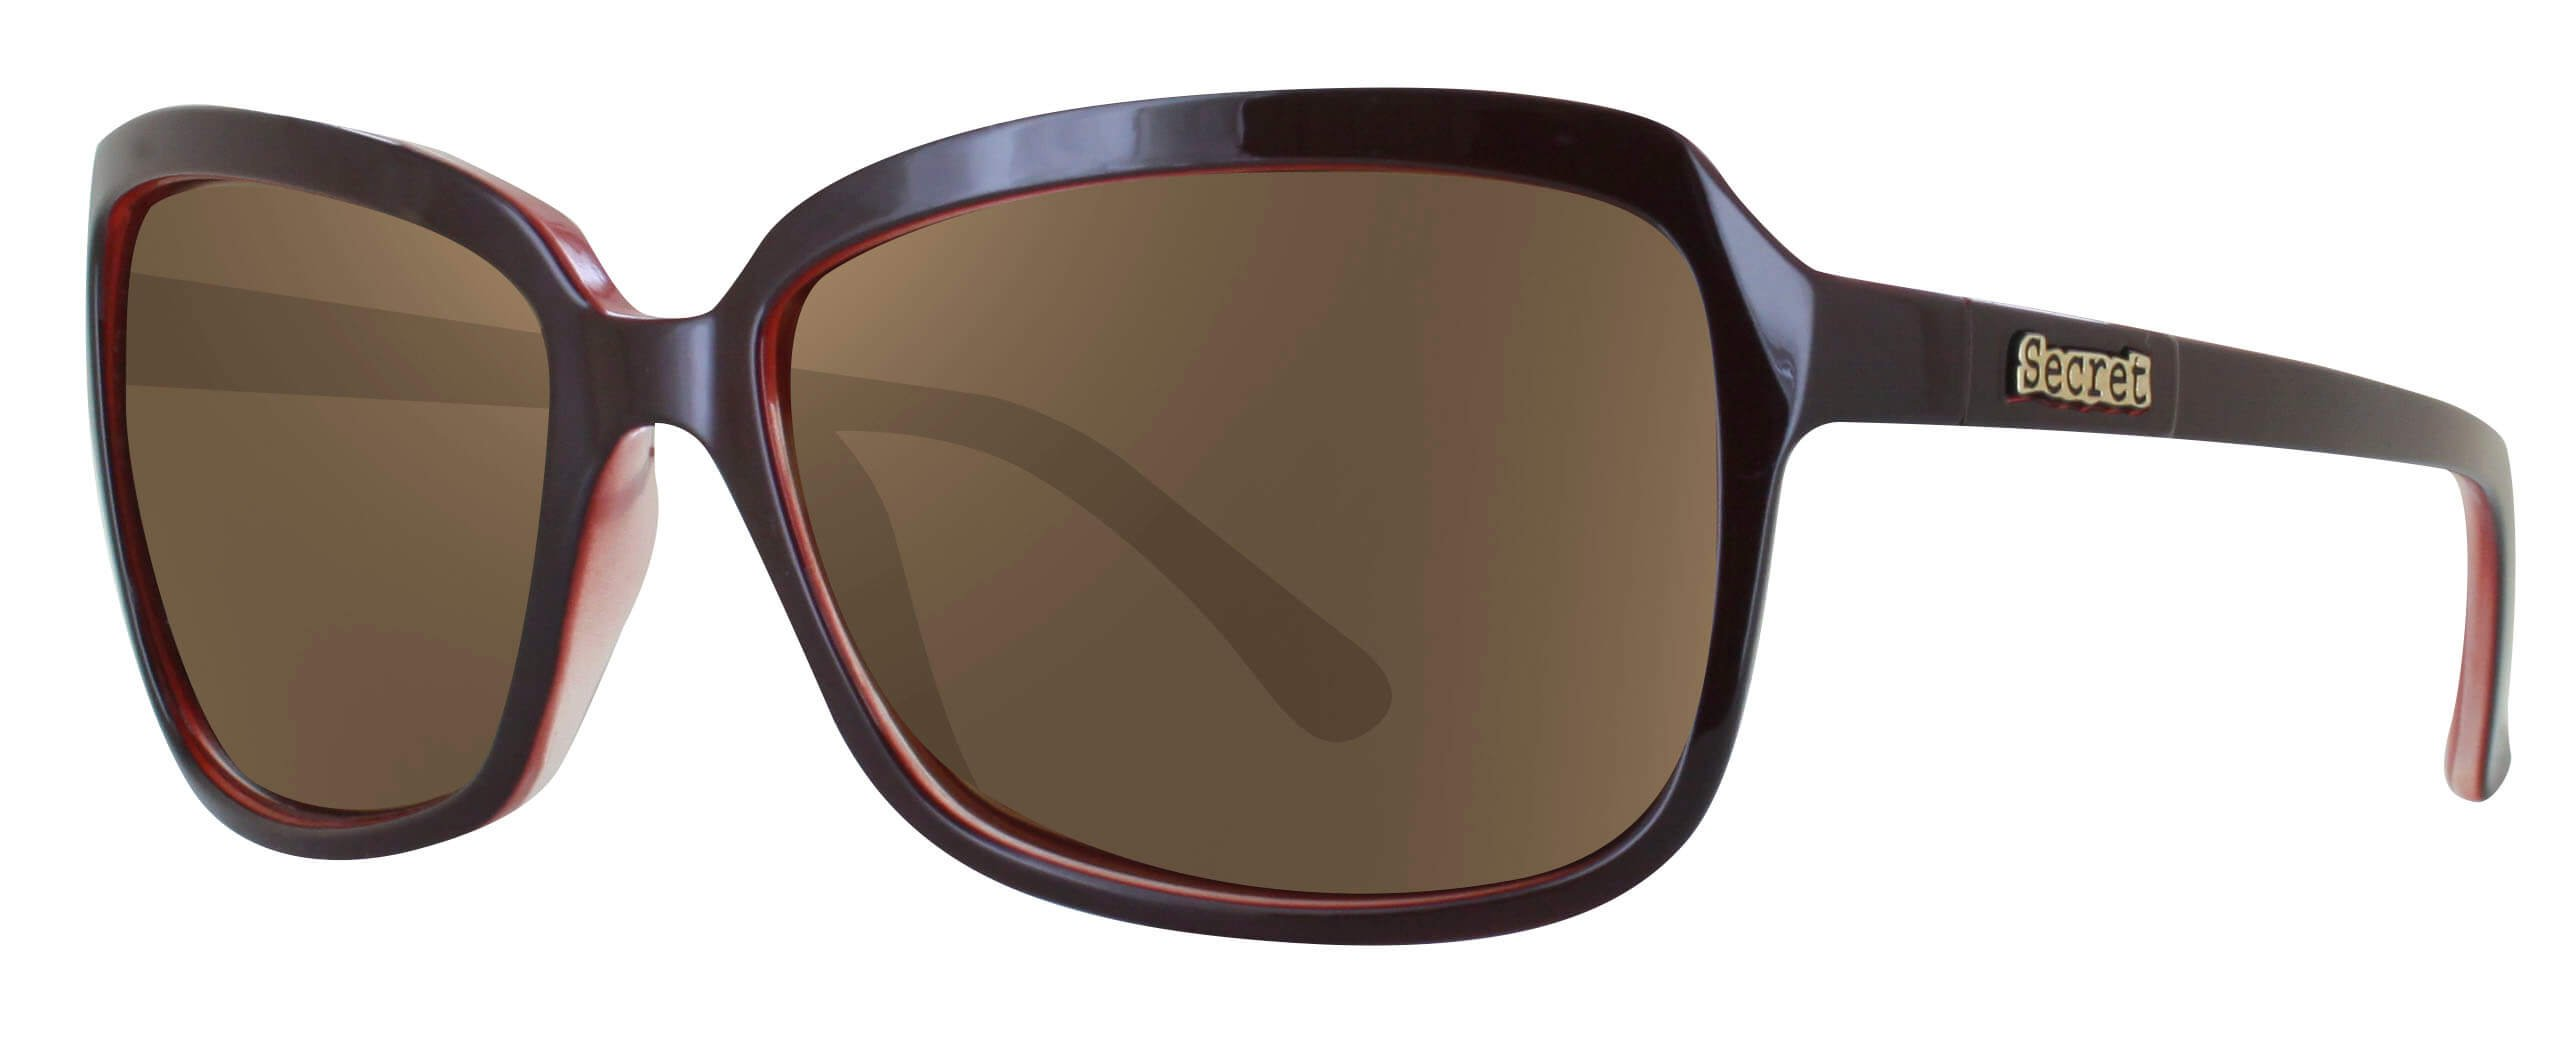 ÓC SECRET PETIT RED LOVE / POLARIZED BROWN